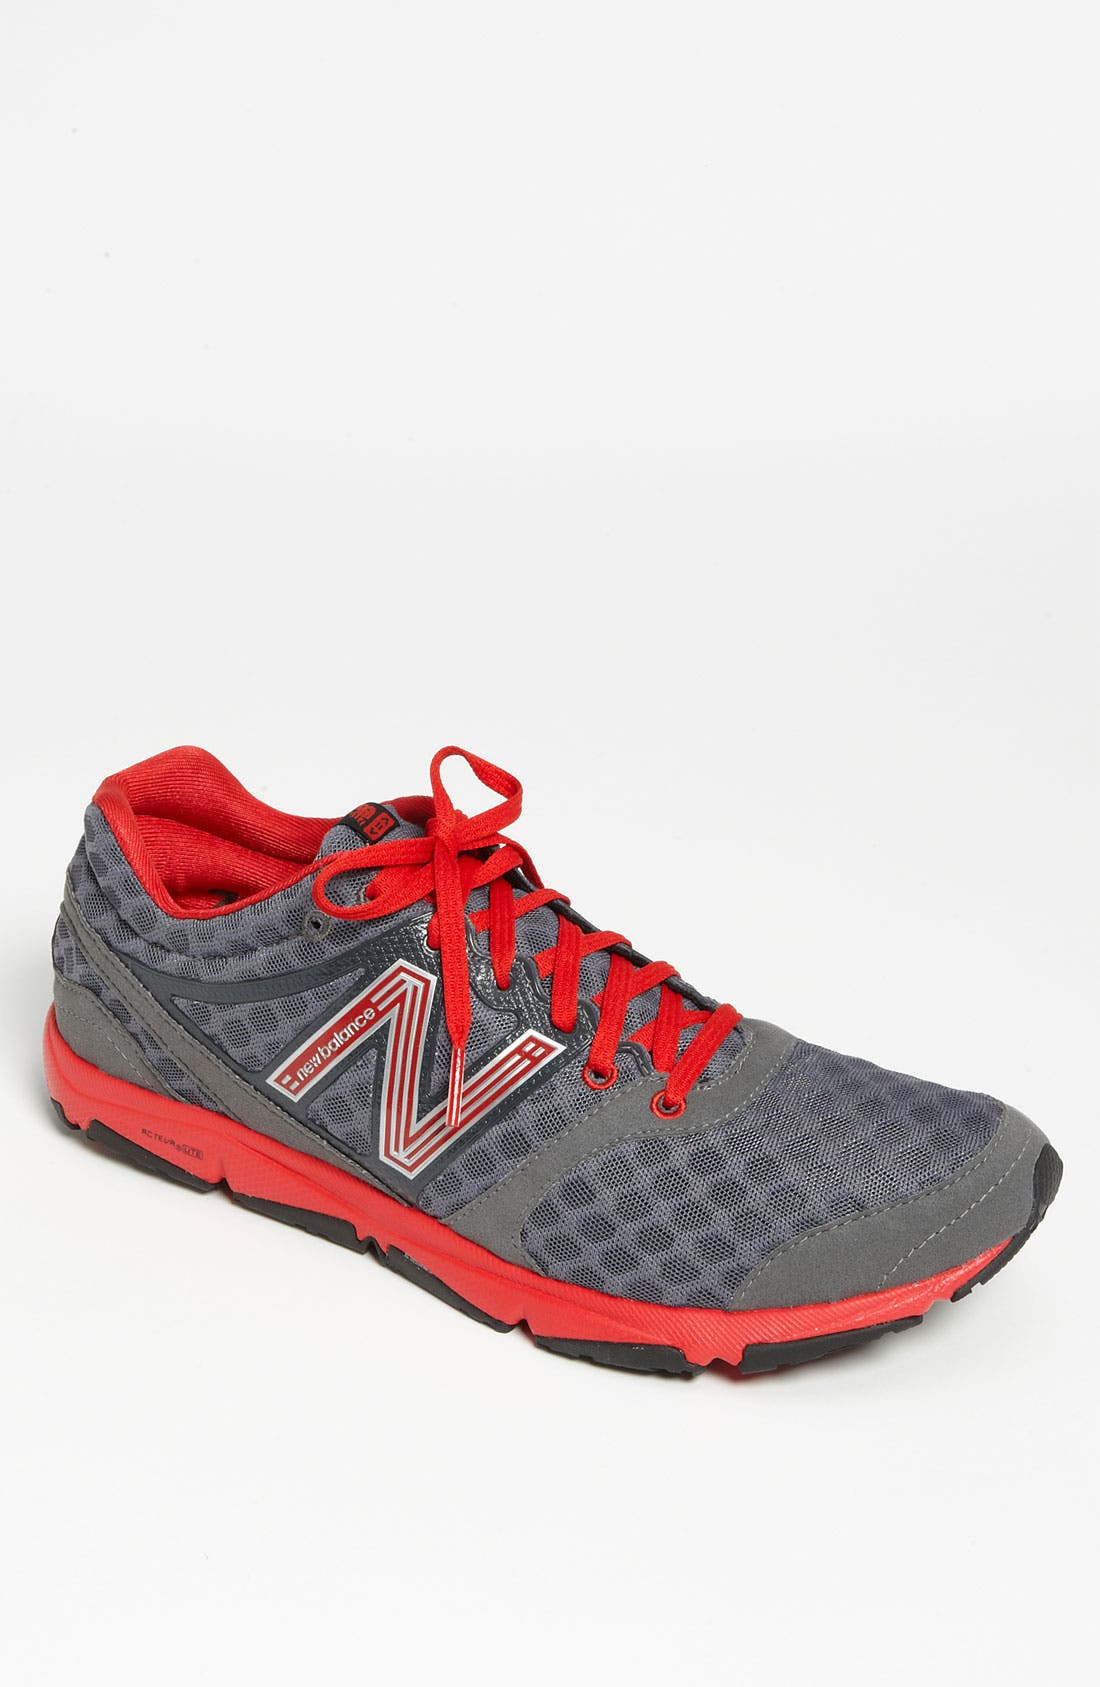 Main Image - New Balance '730' Running Shoe (Men)